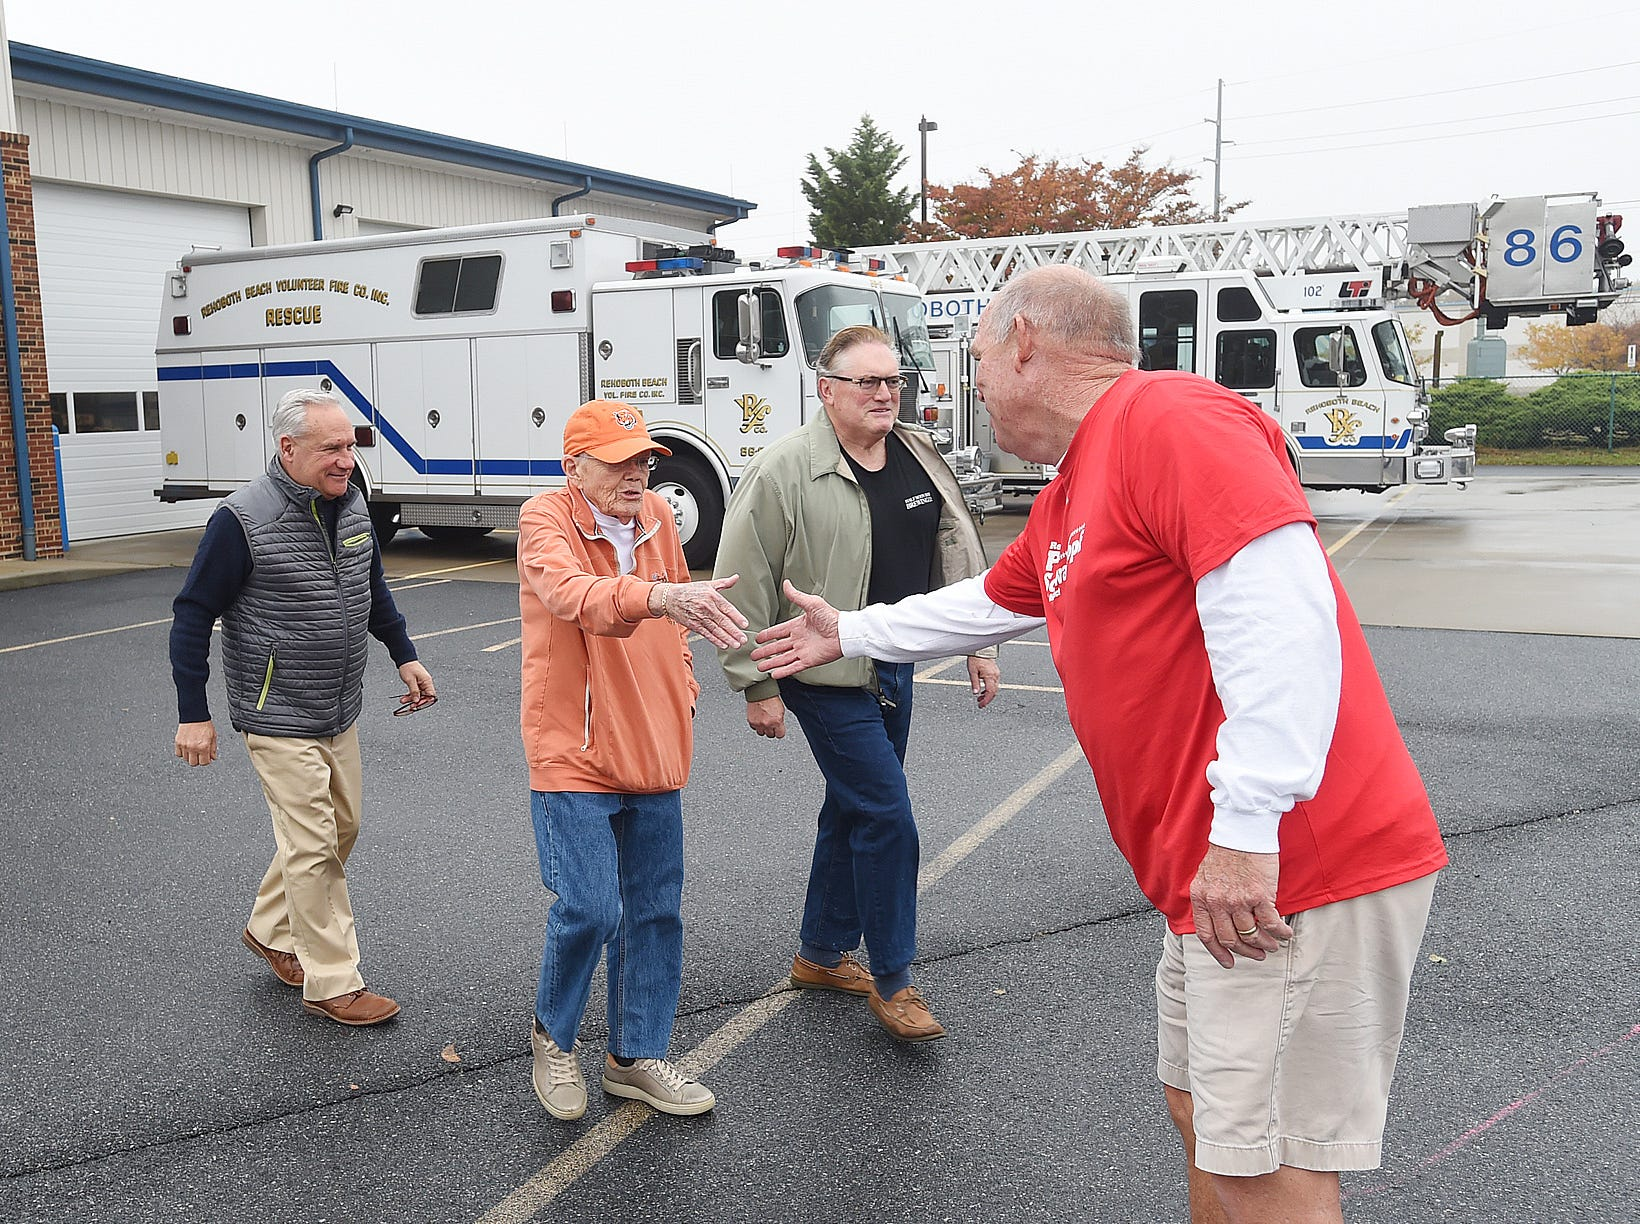 House Speaker Pete Schwartzkopf greets voters leaving Fire Station 2 in Rehoboth Beach as Voter turnout in eastern Sussex County has been steady at polling places in Rehoboth, Roxana, and Angola as candidates still greet supporters for their support.